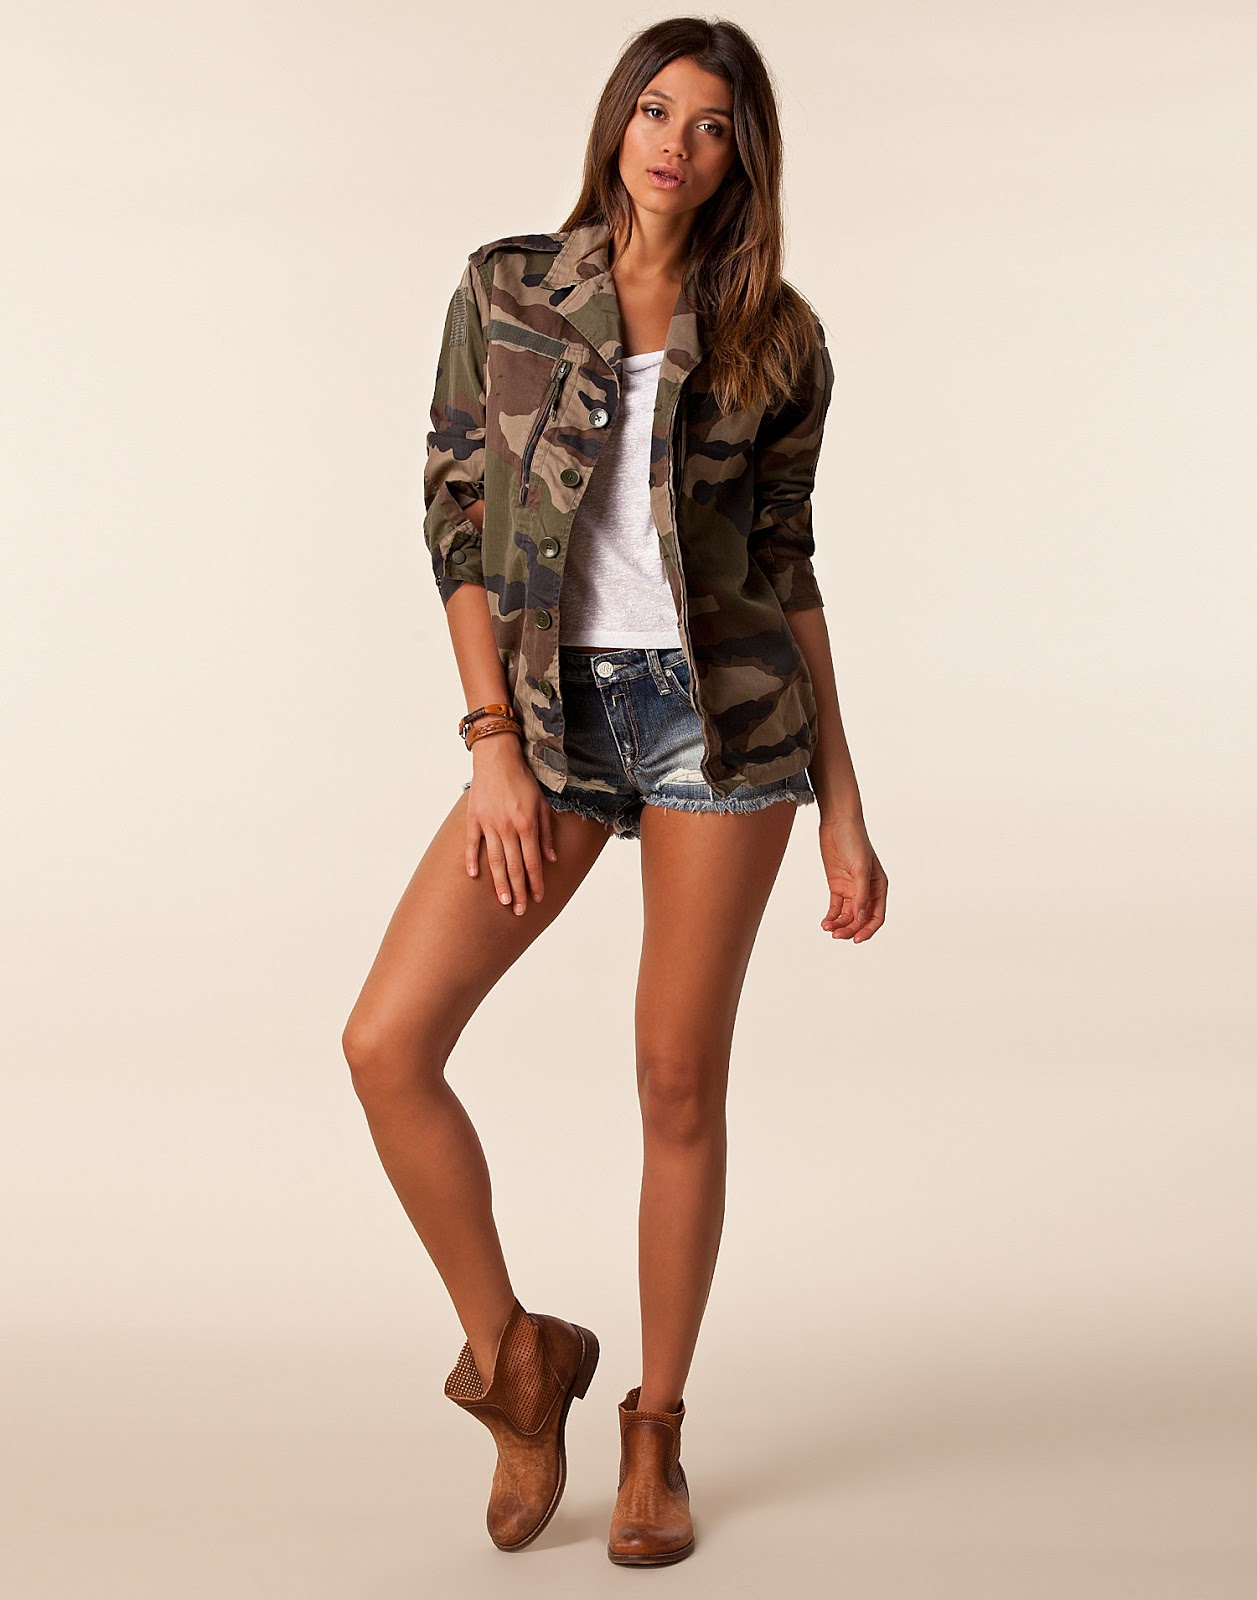 tendance mode army veste camouflage femme arm e francaise. Black Bedroom Furniture Sets. Home Design Ideas